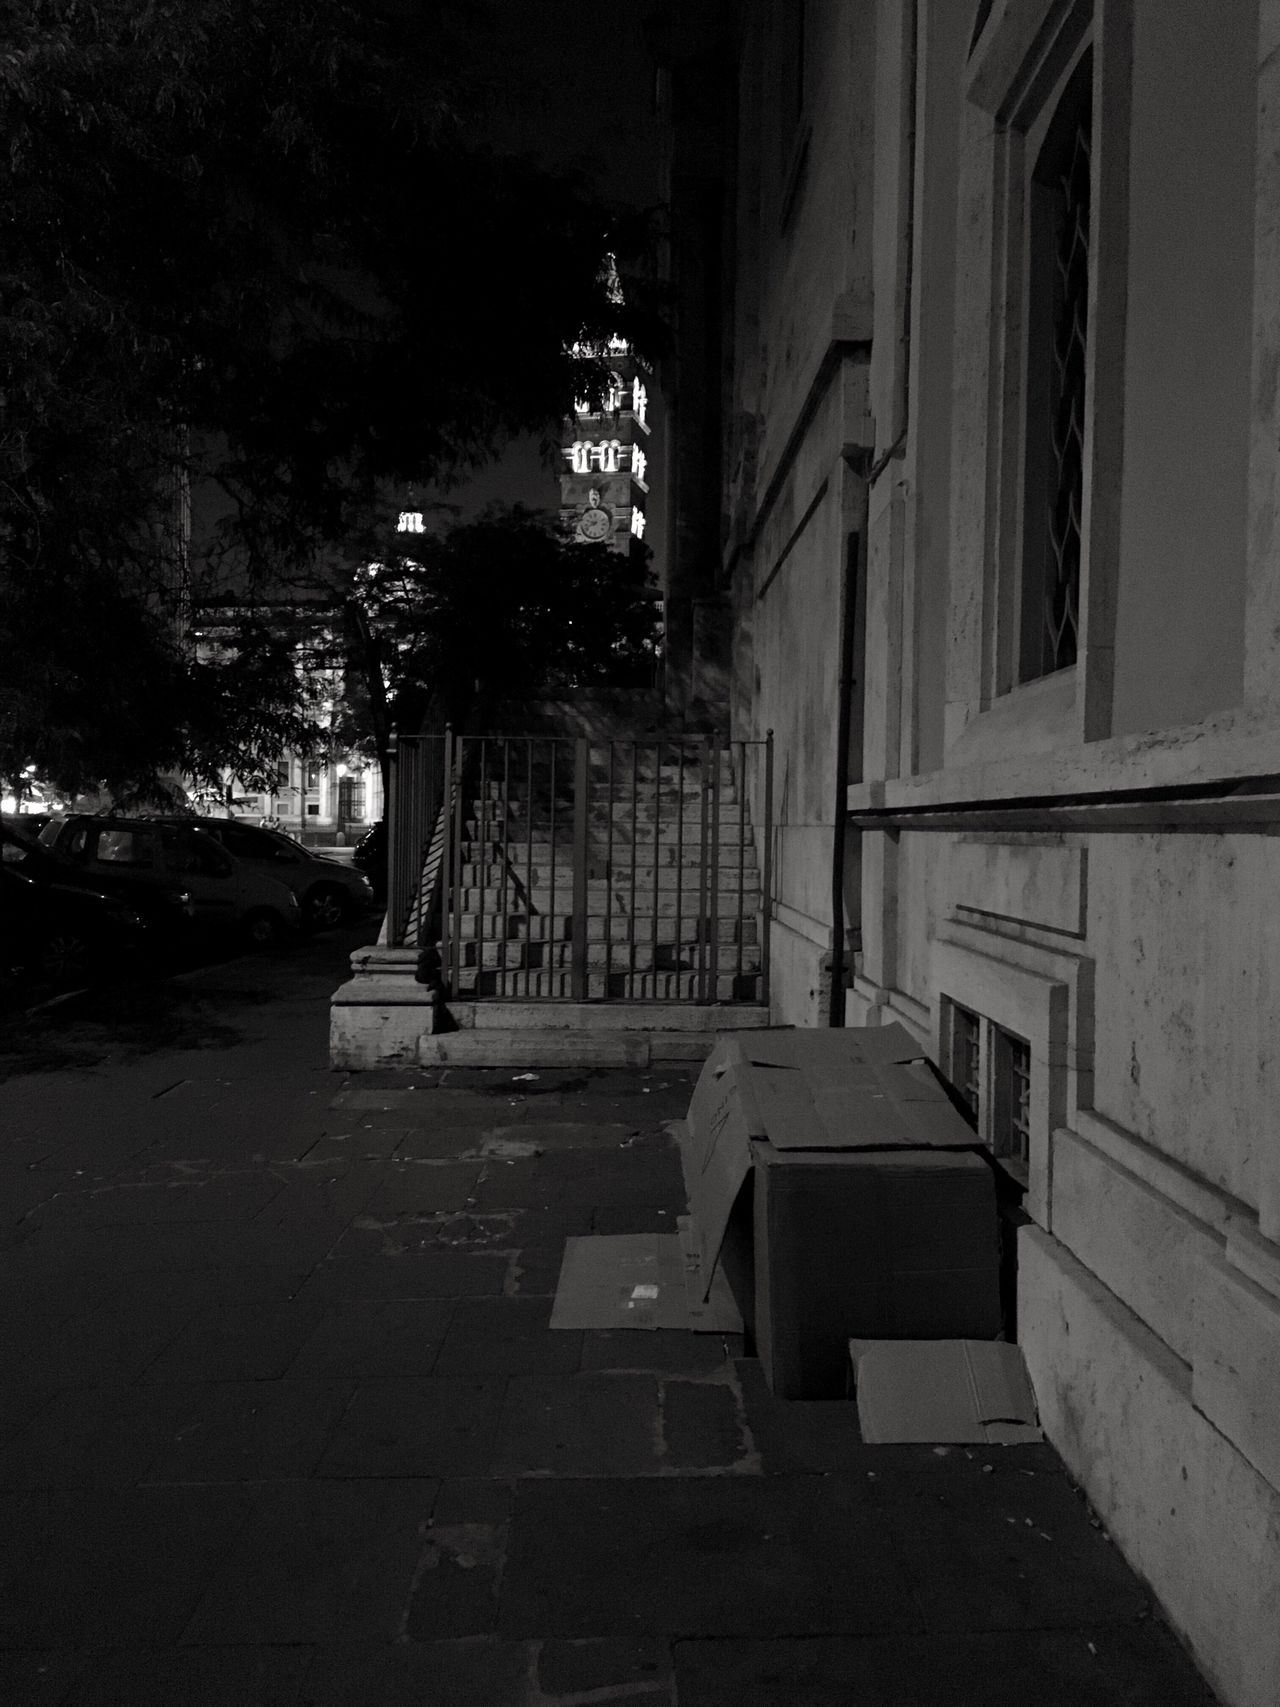 Night Residential Building City No People Real People Oneperson Housebox Bedinbox Clochard Loneliness Badcityview Church Sidewalk